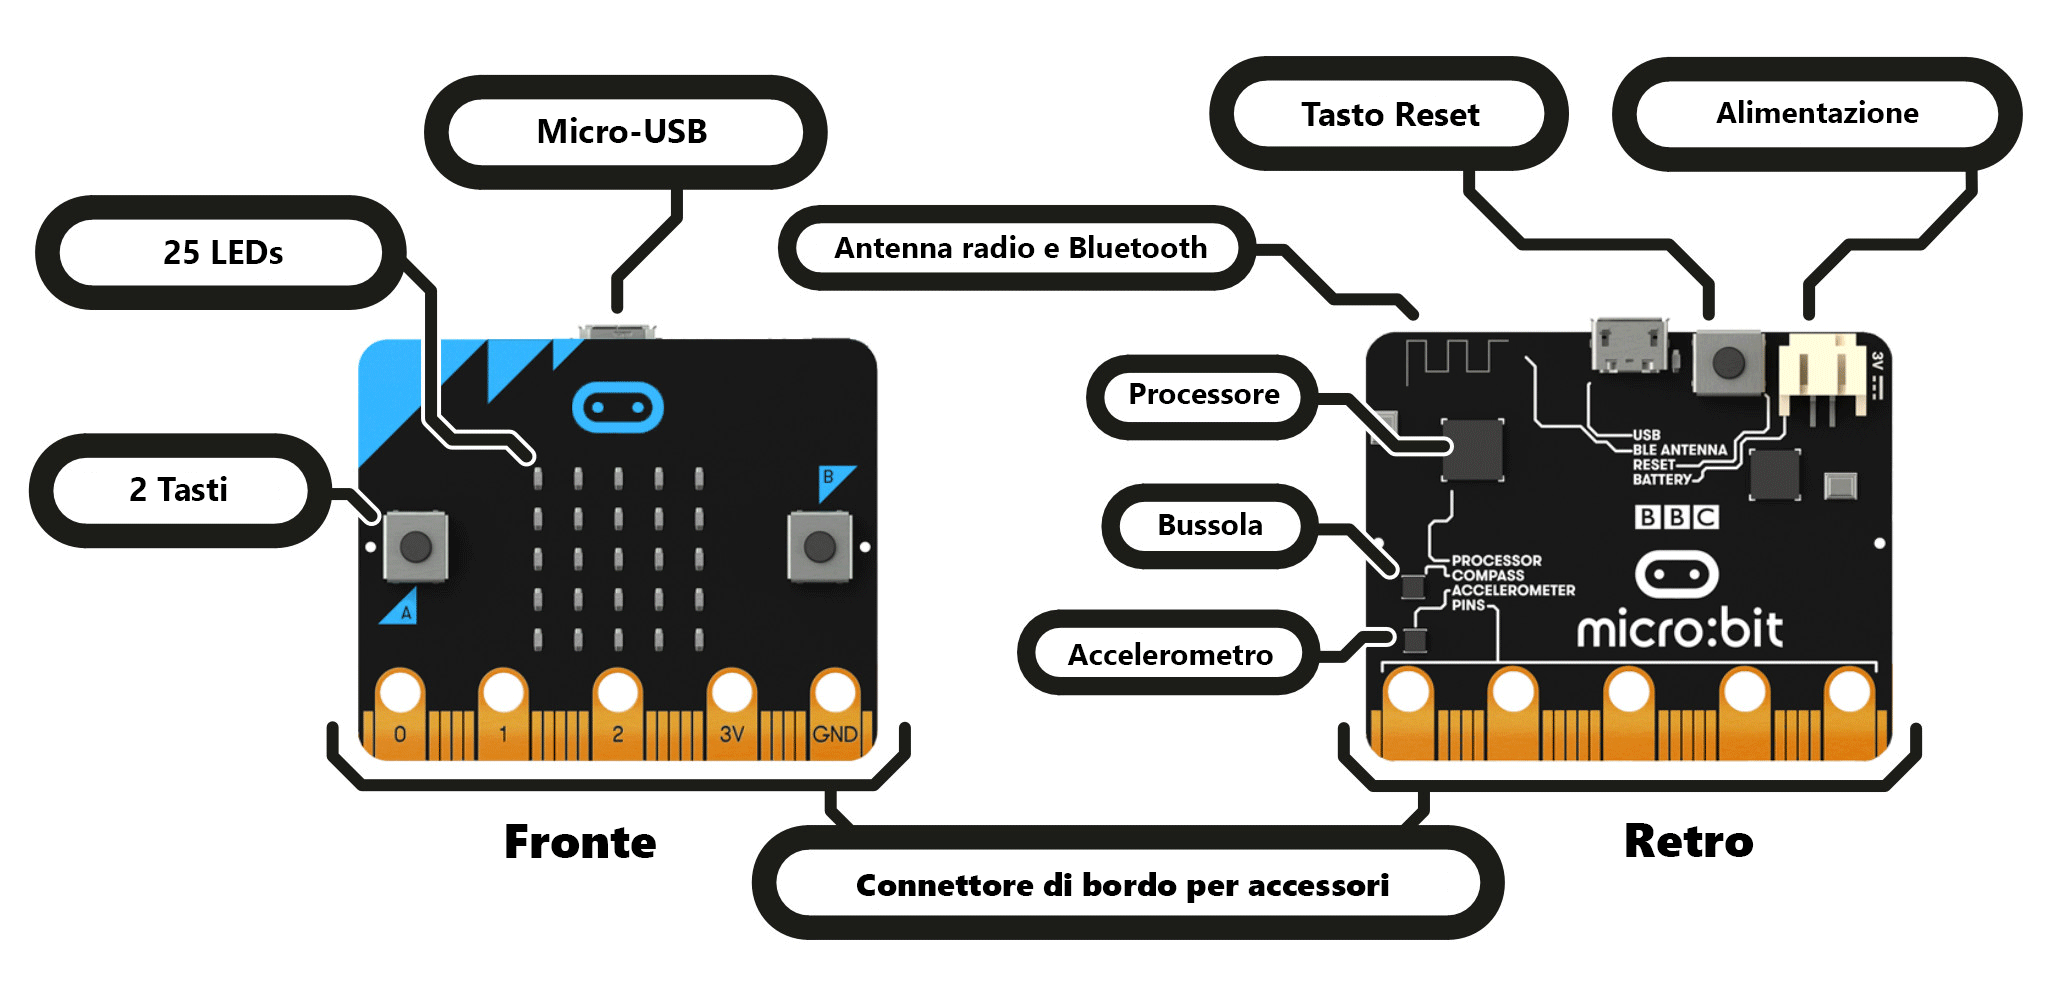 microbit-hardware-access-it.png